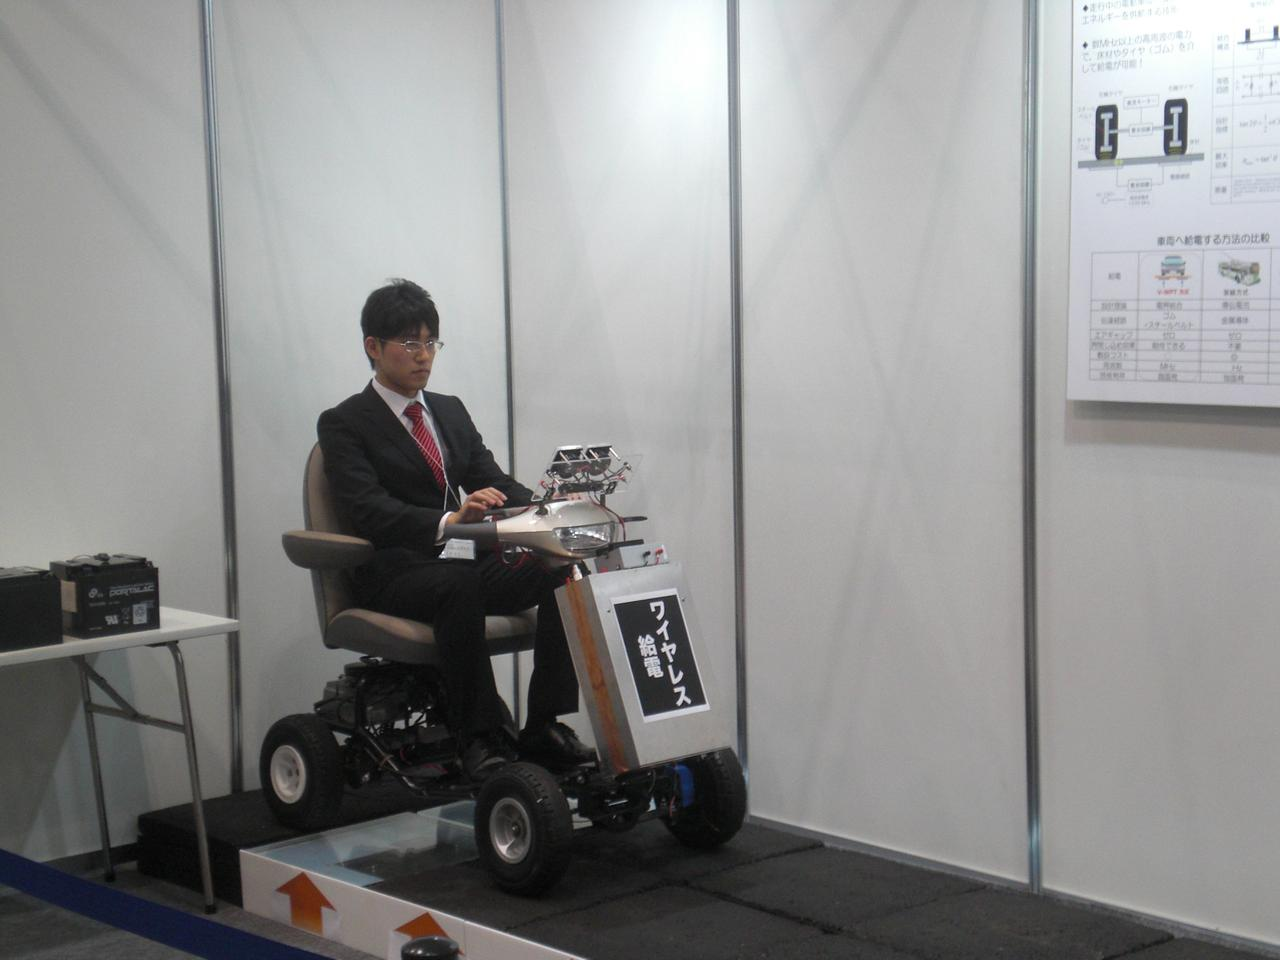 A means of powering electric vehicles using radio frequency transmission has been demonstrated at CEATEC 2014 (Photo: Stephen Clemenger/Gizmag)